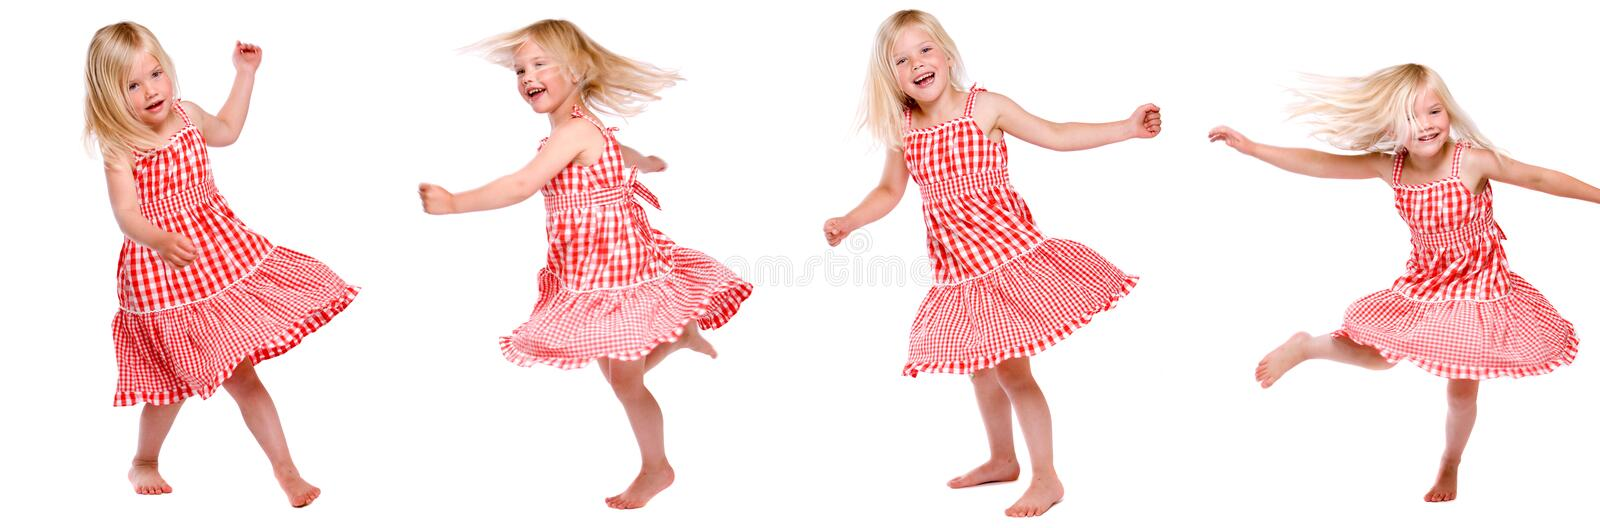 Download Dancing girl stock photo. Image of girl, cute, young, childhood - 5328760